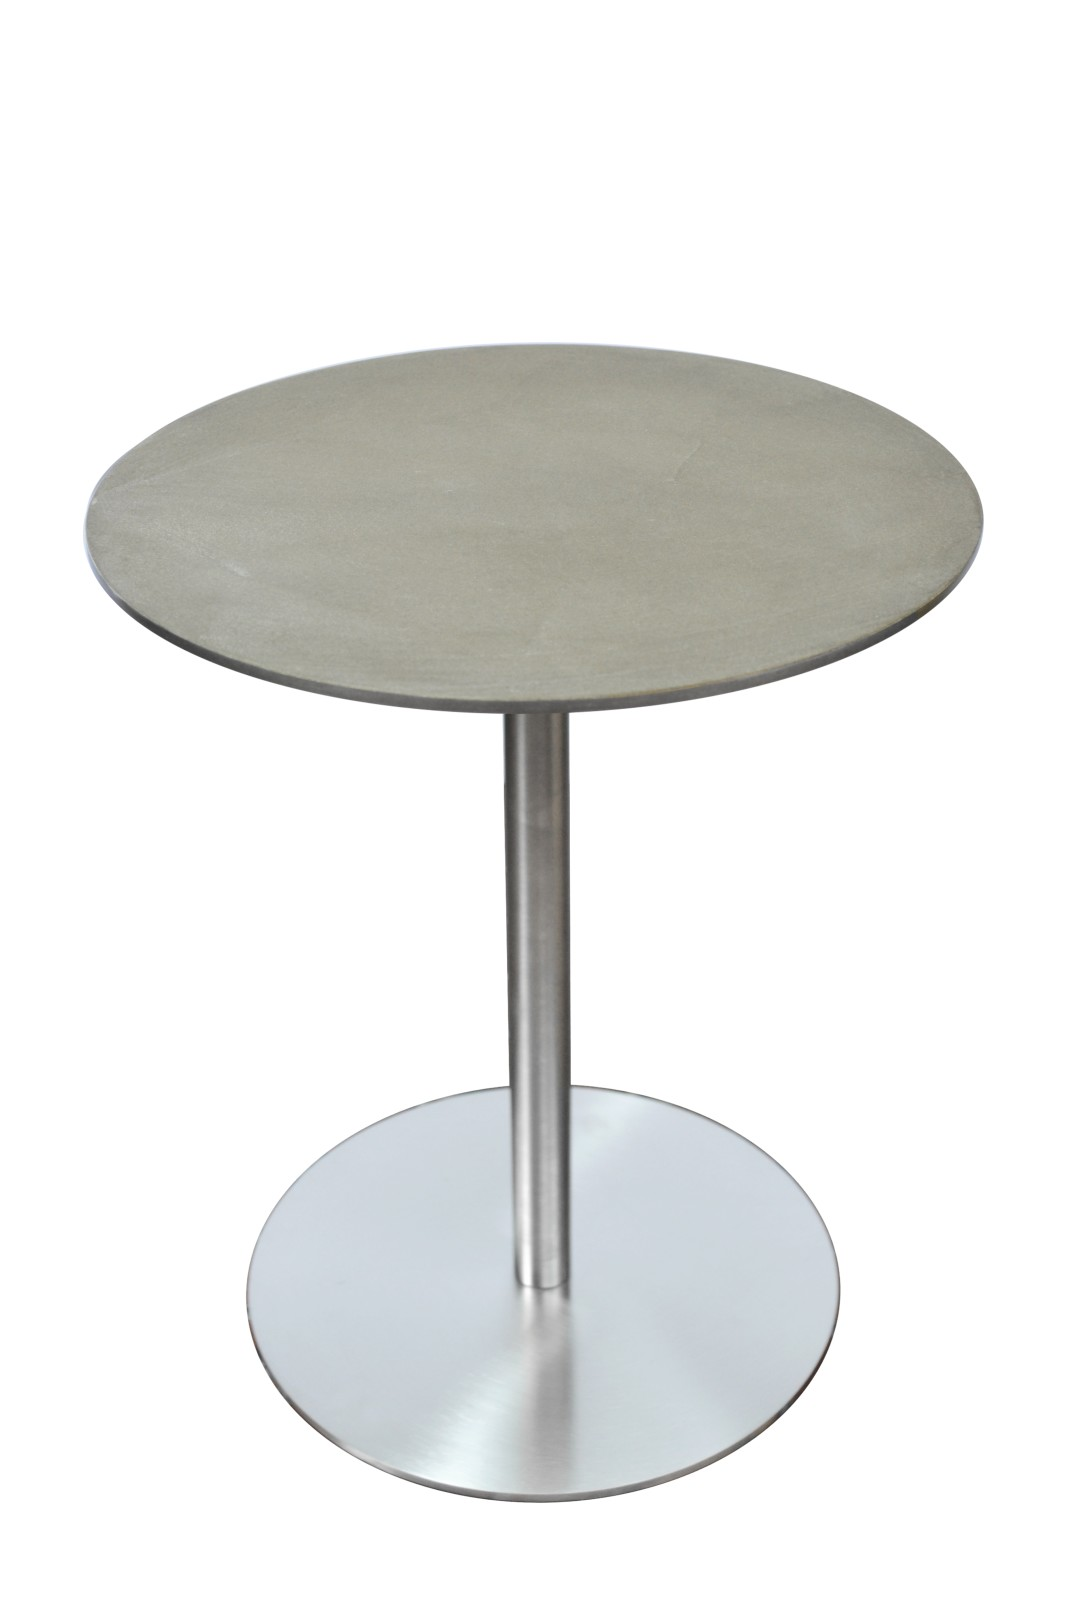 Ester Side Table Stainless Steel, Clay Top, Low